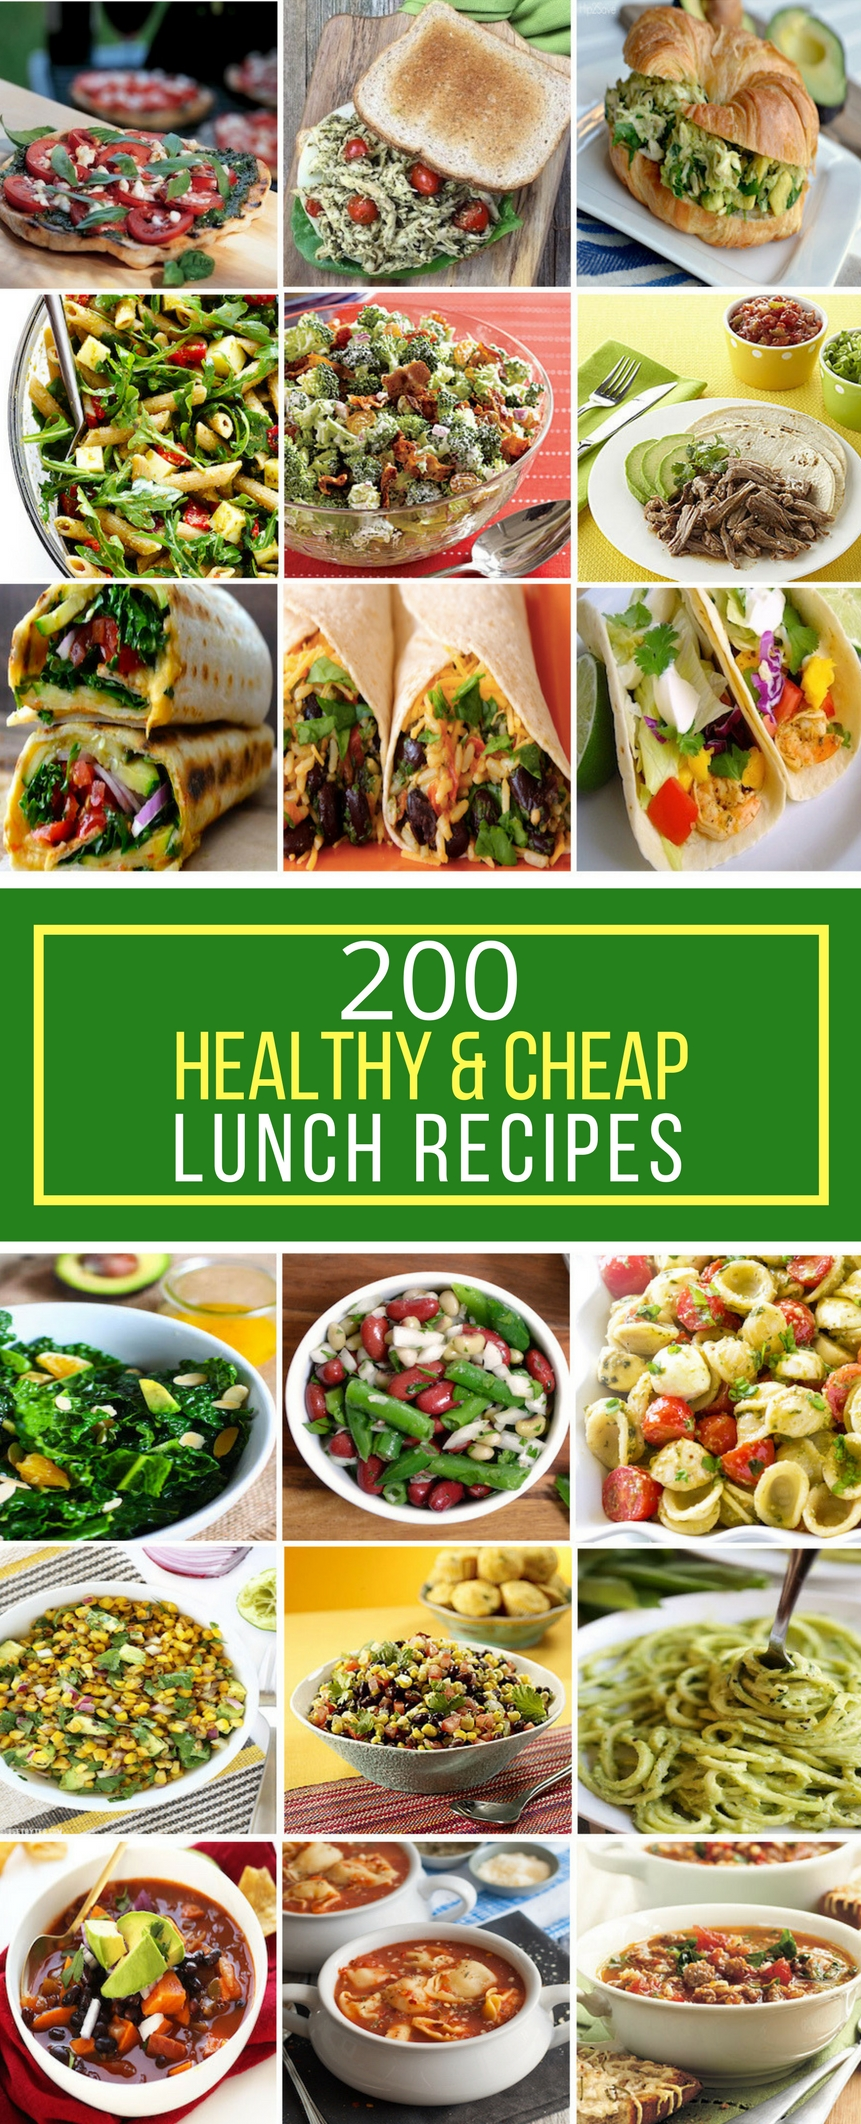 10 Fantastic Cheap And Healthy Dinner Ideas 200 healthy cheap lunch recipes prudent penny pincher 1 2020